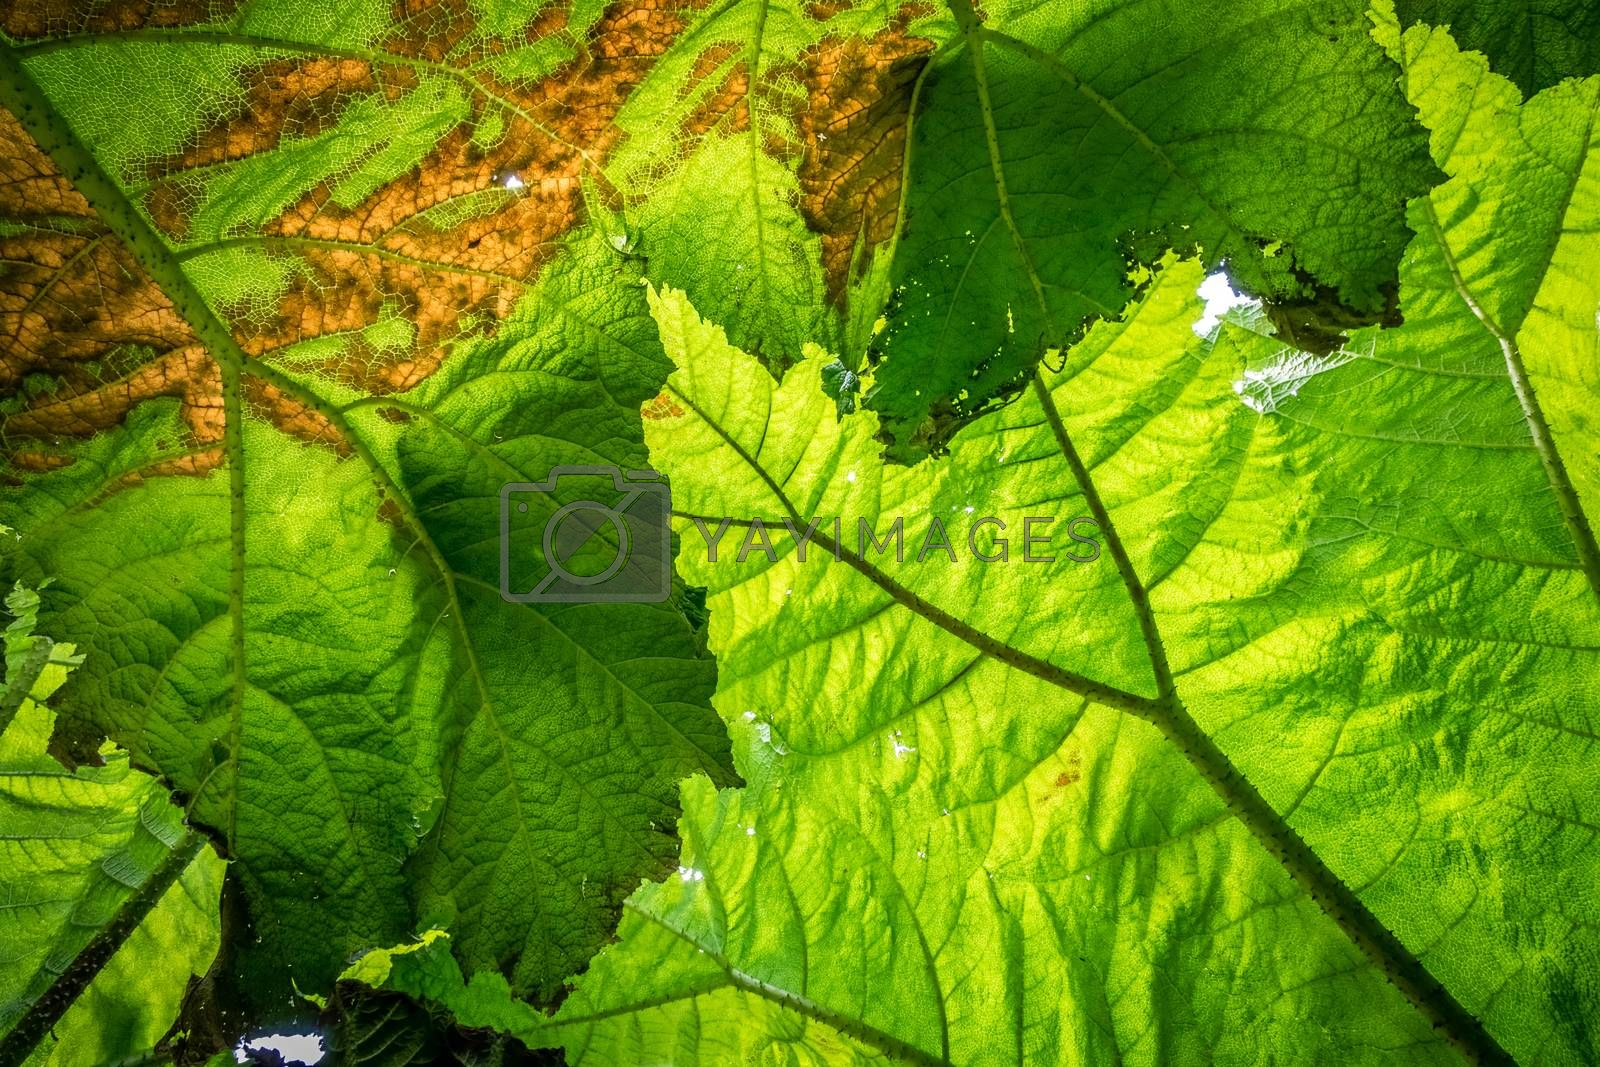 Close up of a texture of a large green leaf